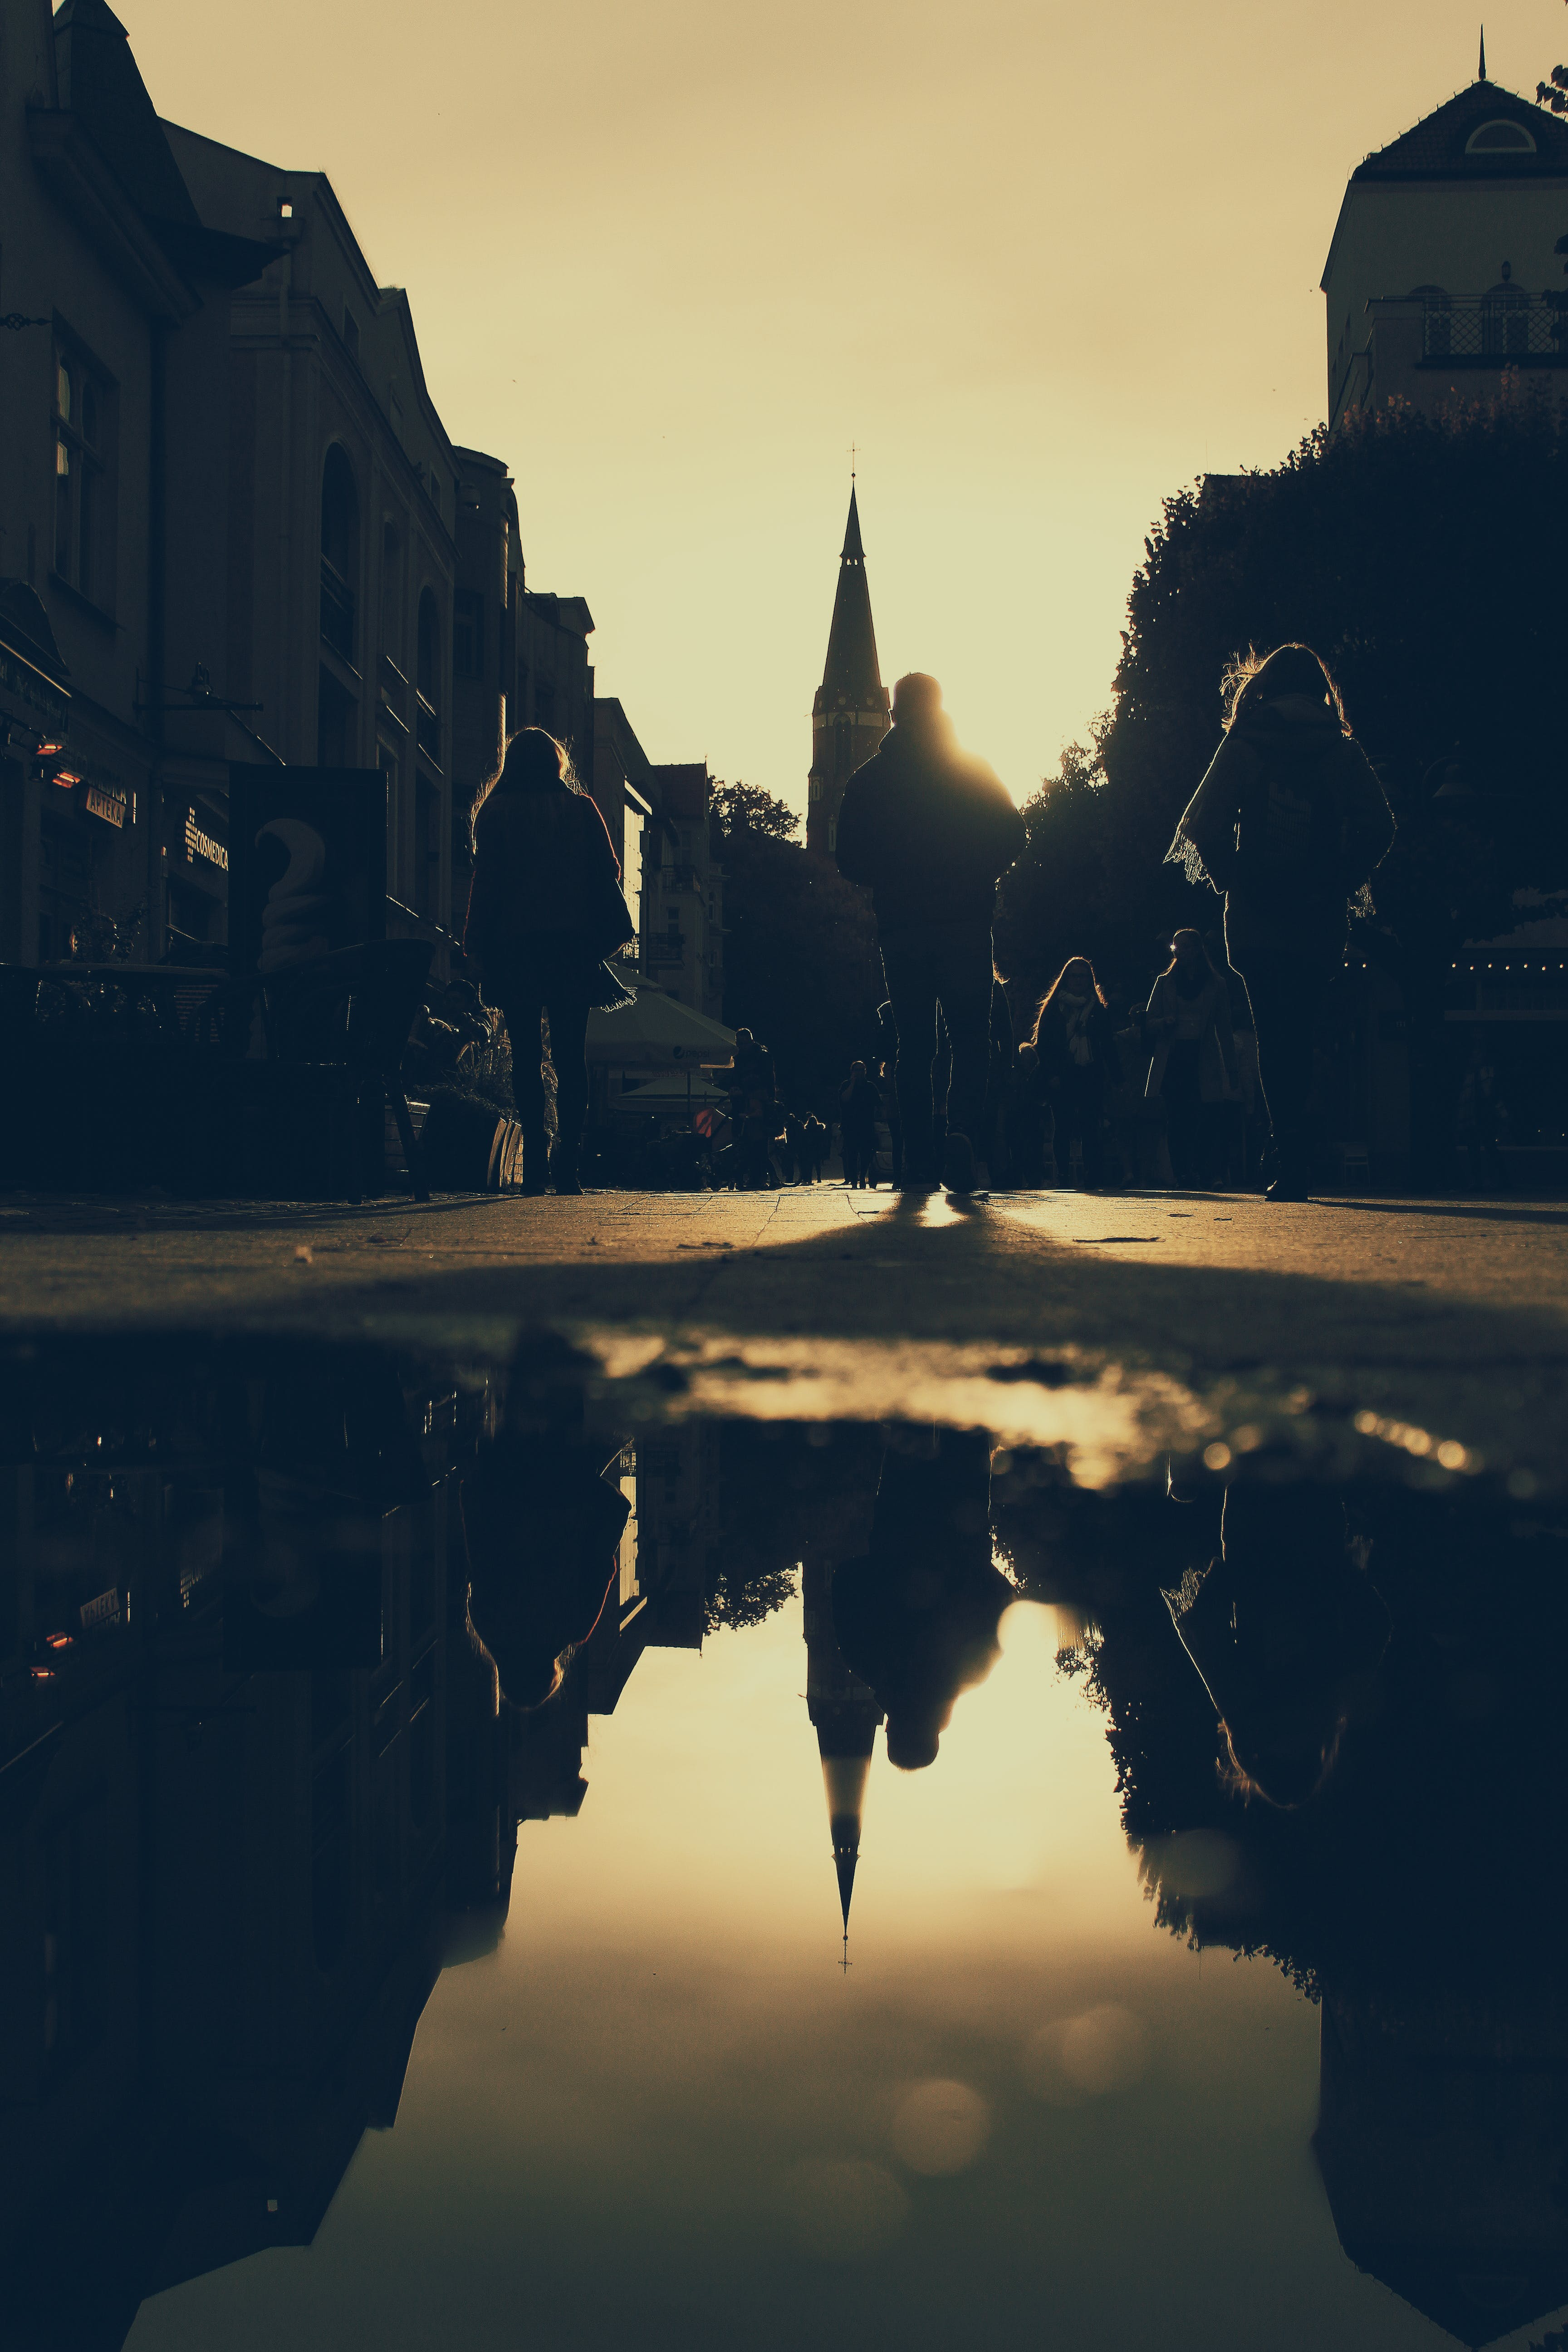 Silhouette of People Walking on Street Reflected on Puddle